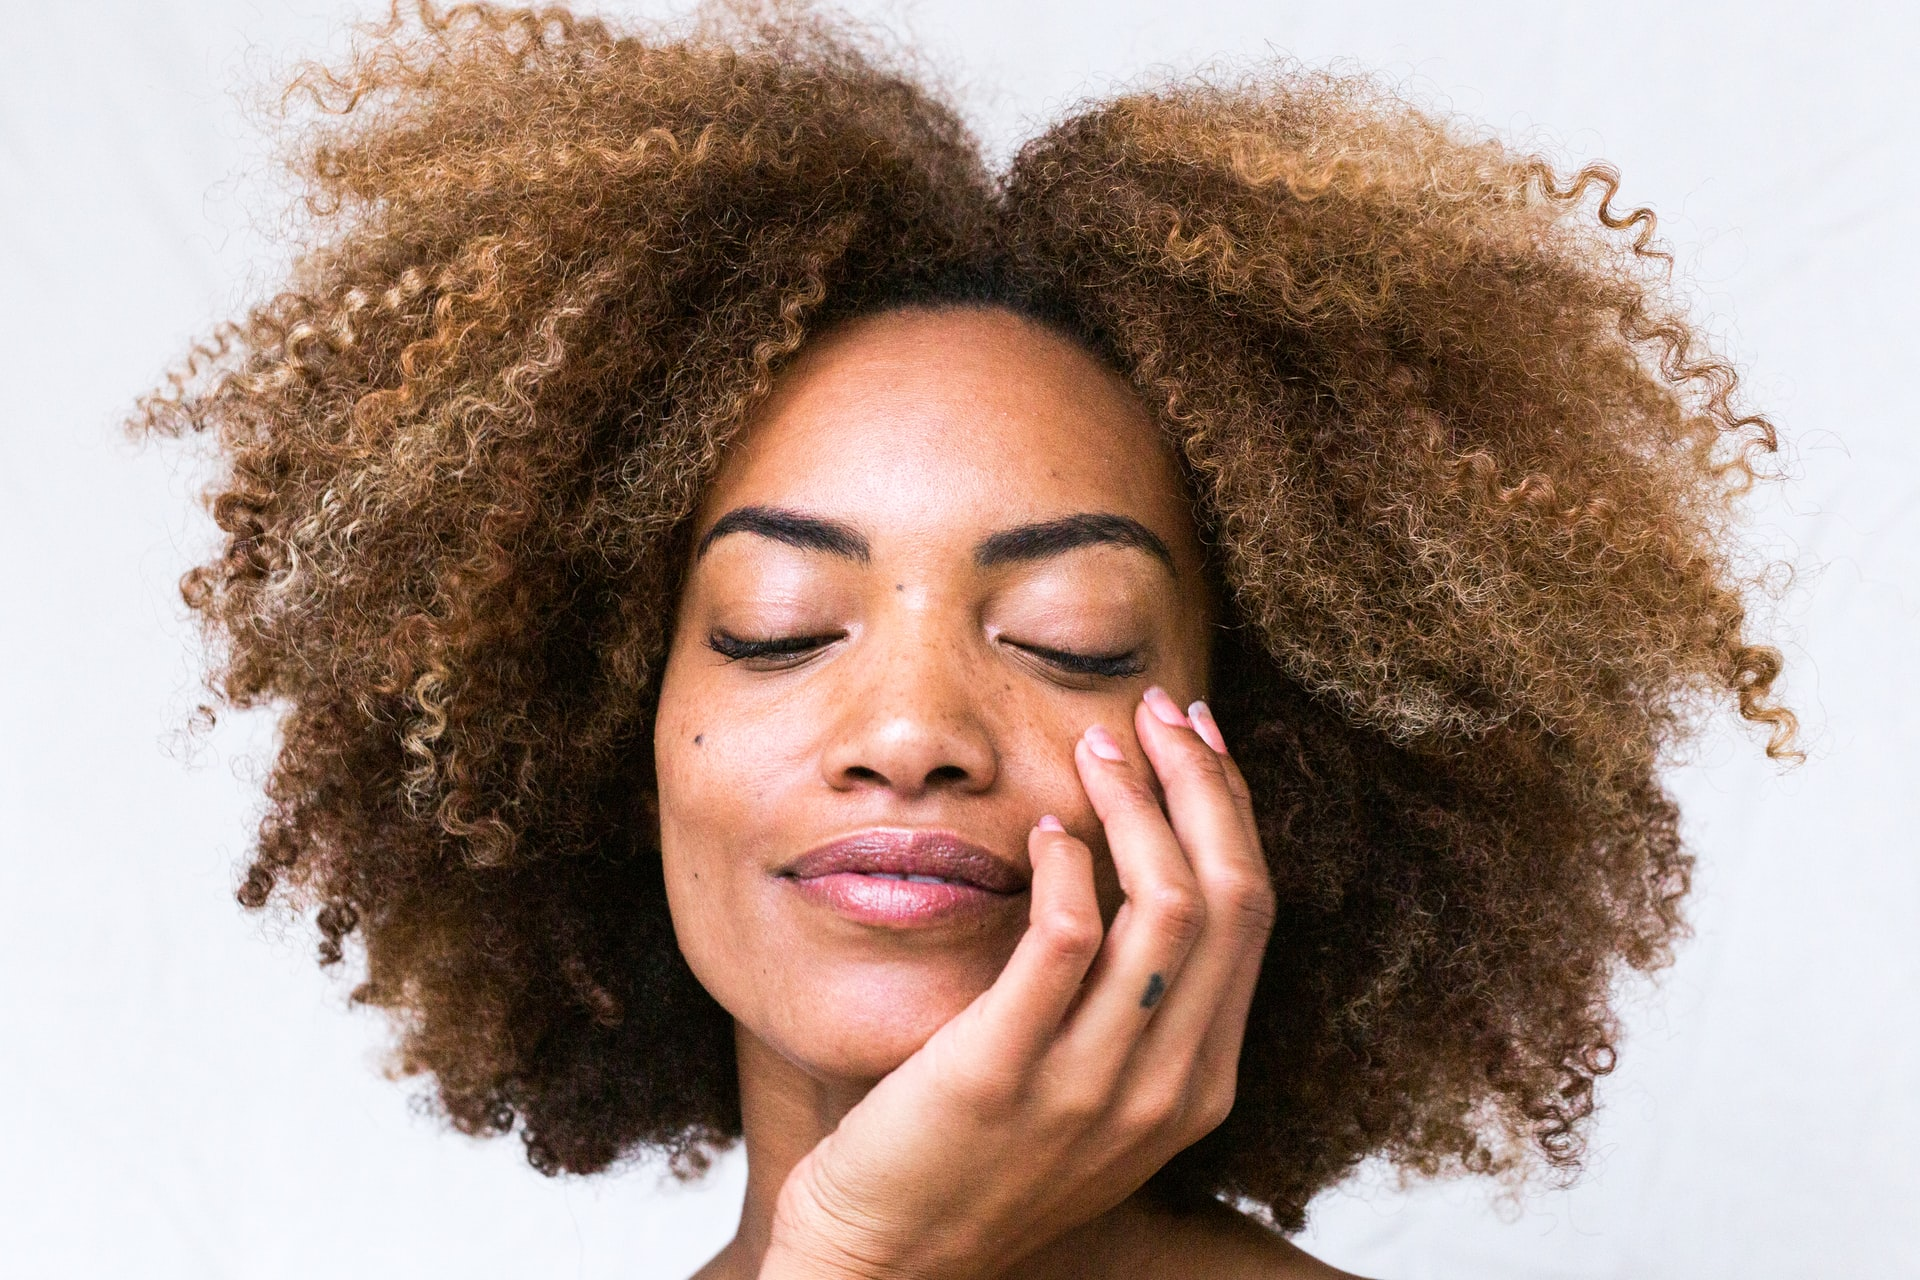 The Benefits of CBD for Skincare